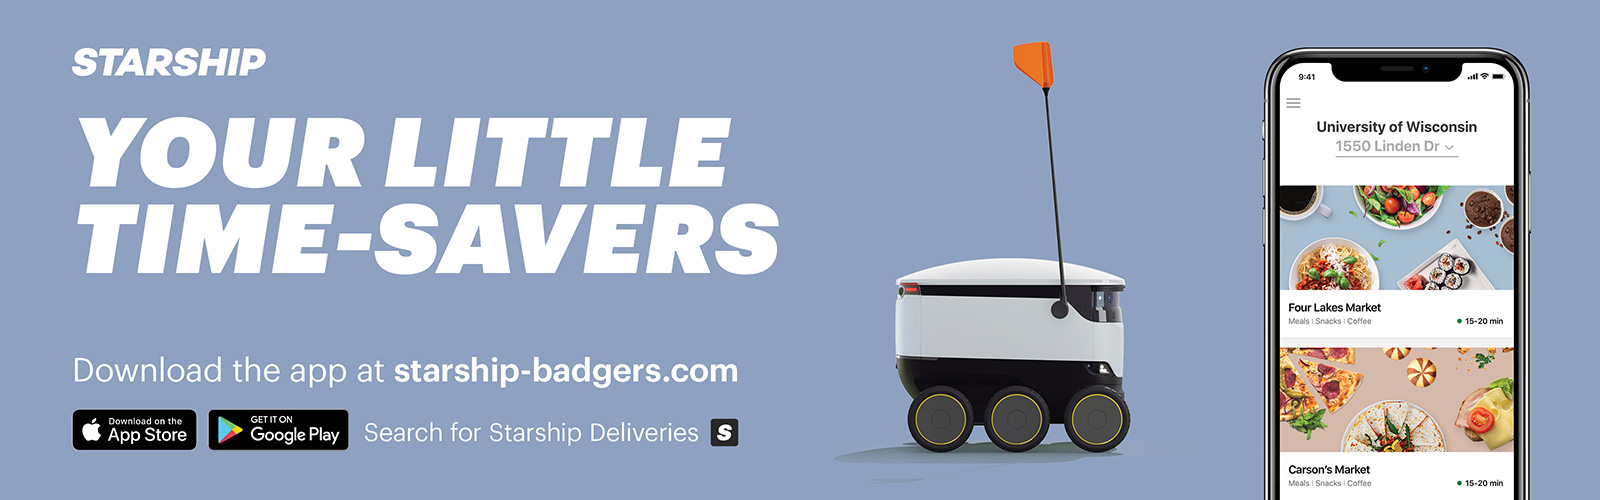 Starship Delivery Robots. Order at starship-badger.com